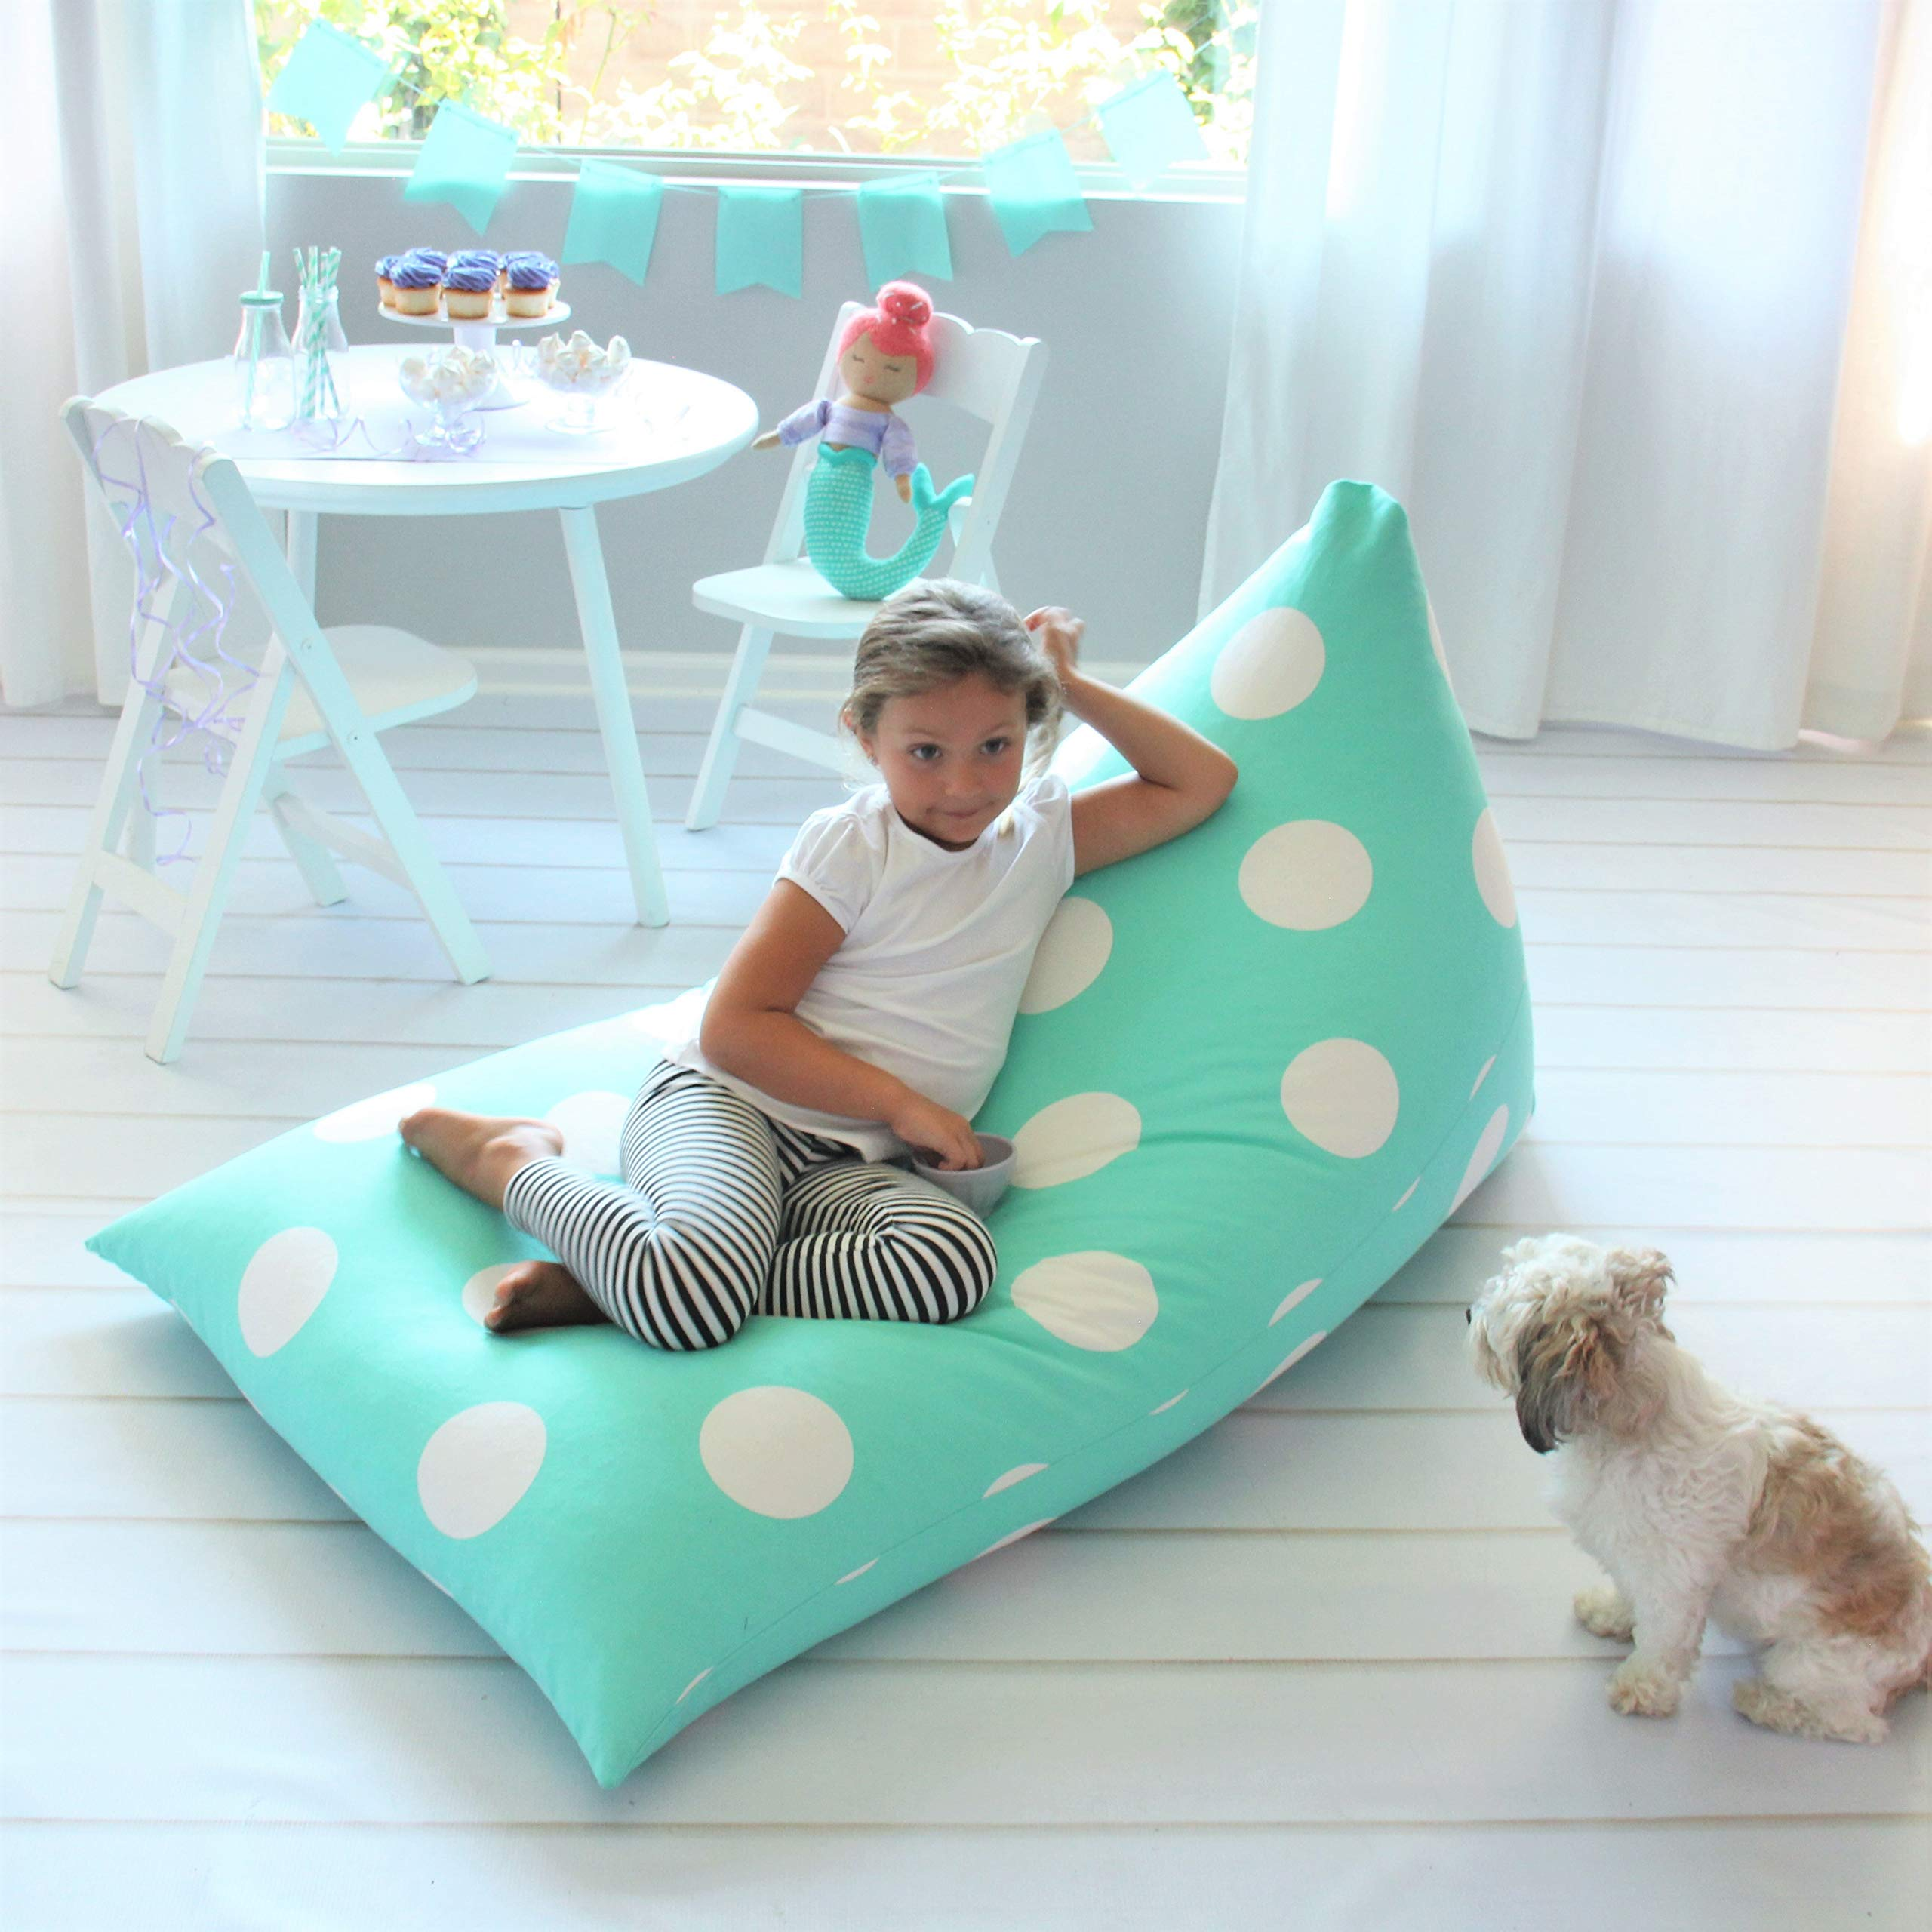 Butterfly Craze Stuffed Animal Storage Bean Bag Chair - Stuff 'n Sit Toy Bag Floor Lounger for Kids, Teens and Adult |Extra Large 200L/52 Gal Capacity |Premium Cotton Canvas (Teal) by Butterfly Craze